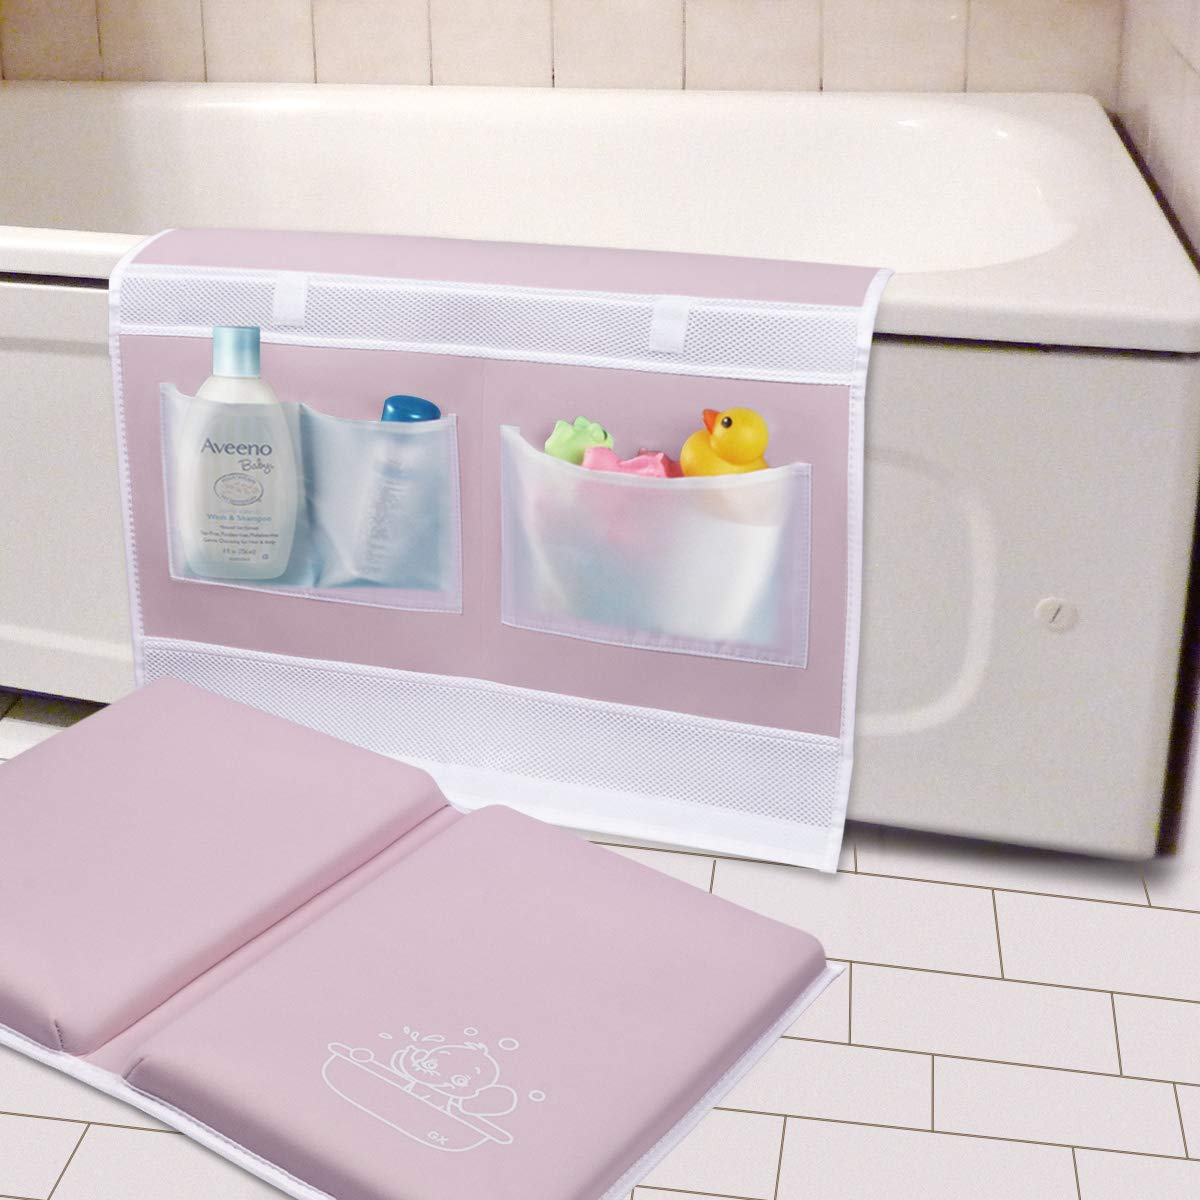 """Bath Kneeler and Elbow Rest 1.5"""" Thick Kneeling Mat with Toy Organizer - Bath Kneeling Pad for Baby Bath Time, Garden Work, Exercise - Detachable and Foldable Bathtub Mat for Parents - Pink"""